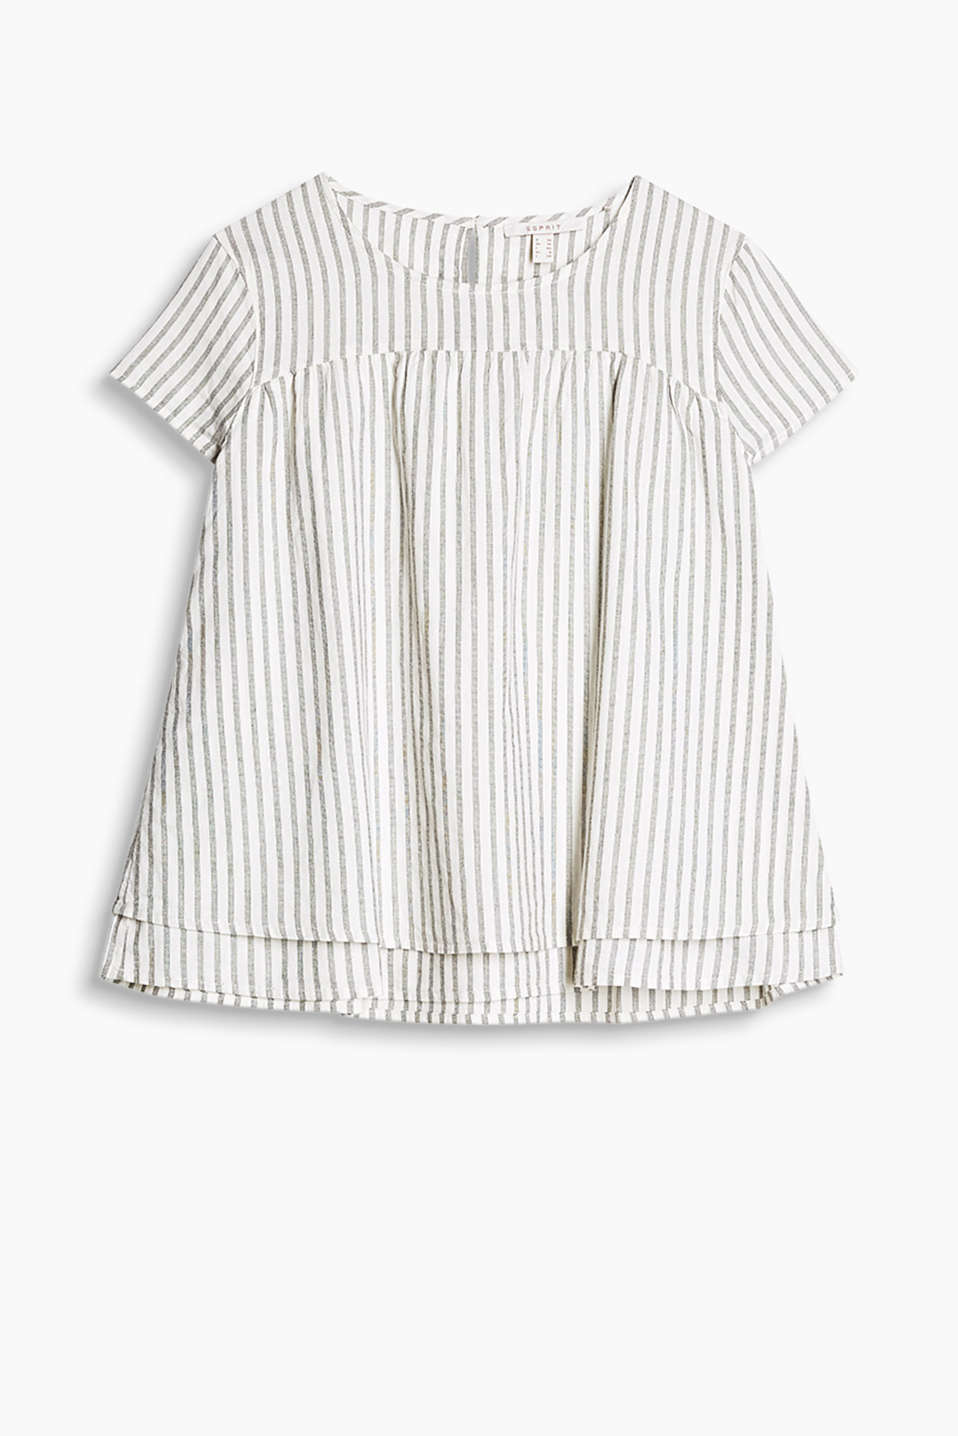 Blouse top in soft cotton fabric with stripes and a layered effect